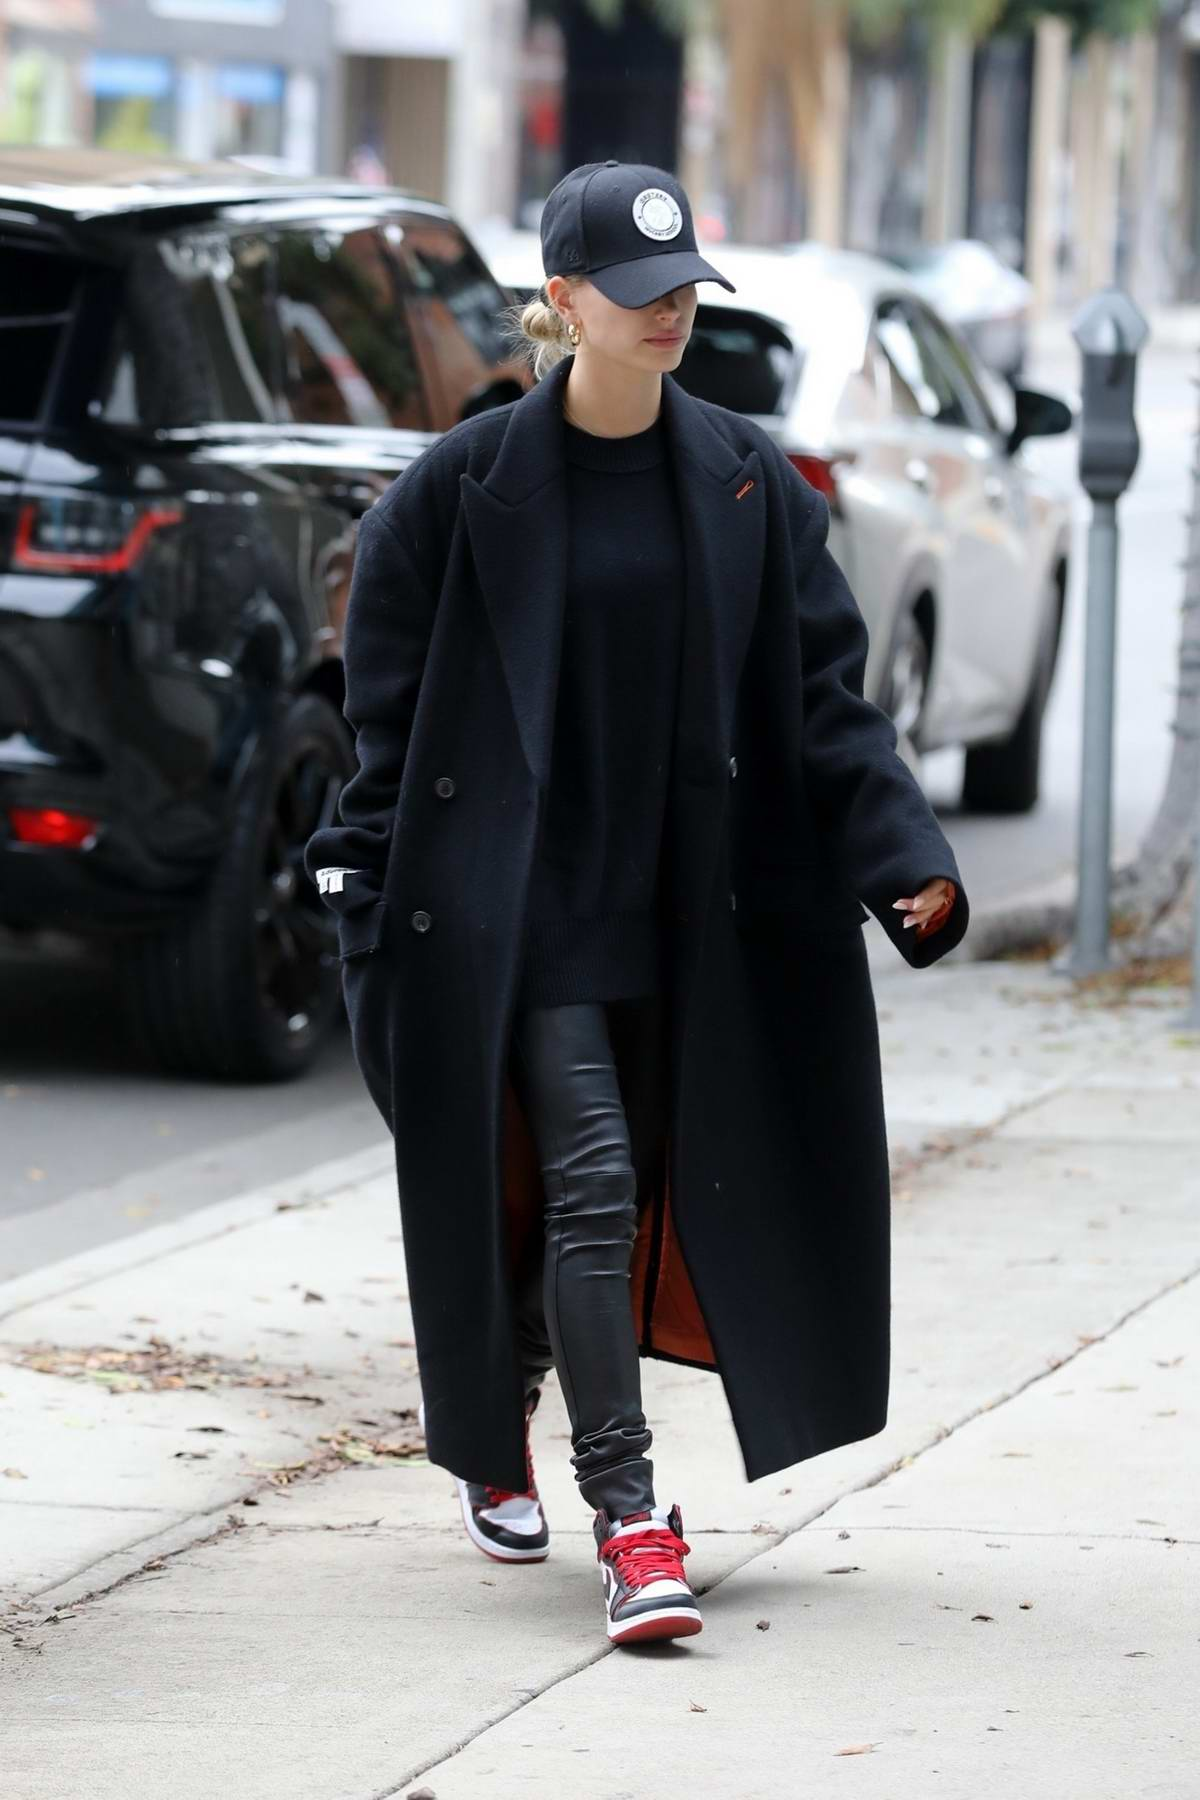 Hailey Bieber dons all black while visiting a hair salon in Los Angeles